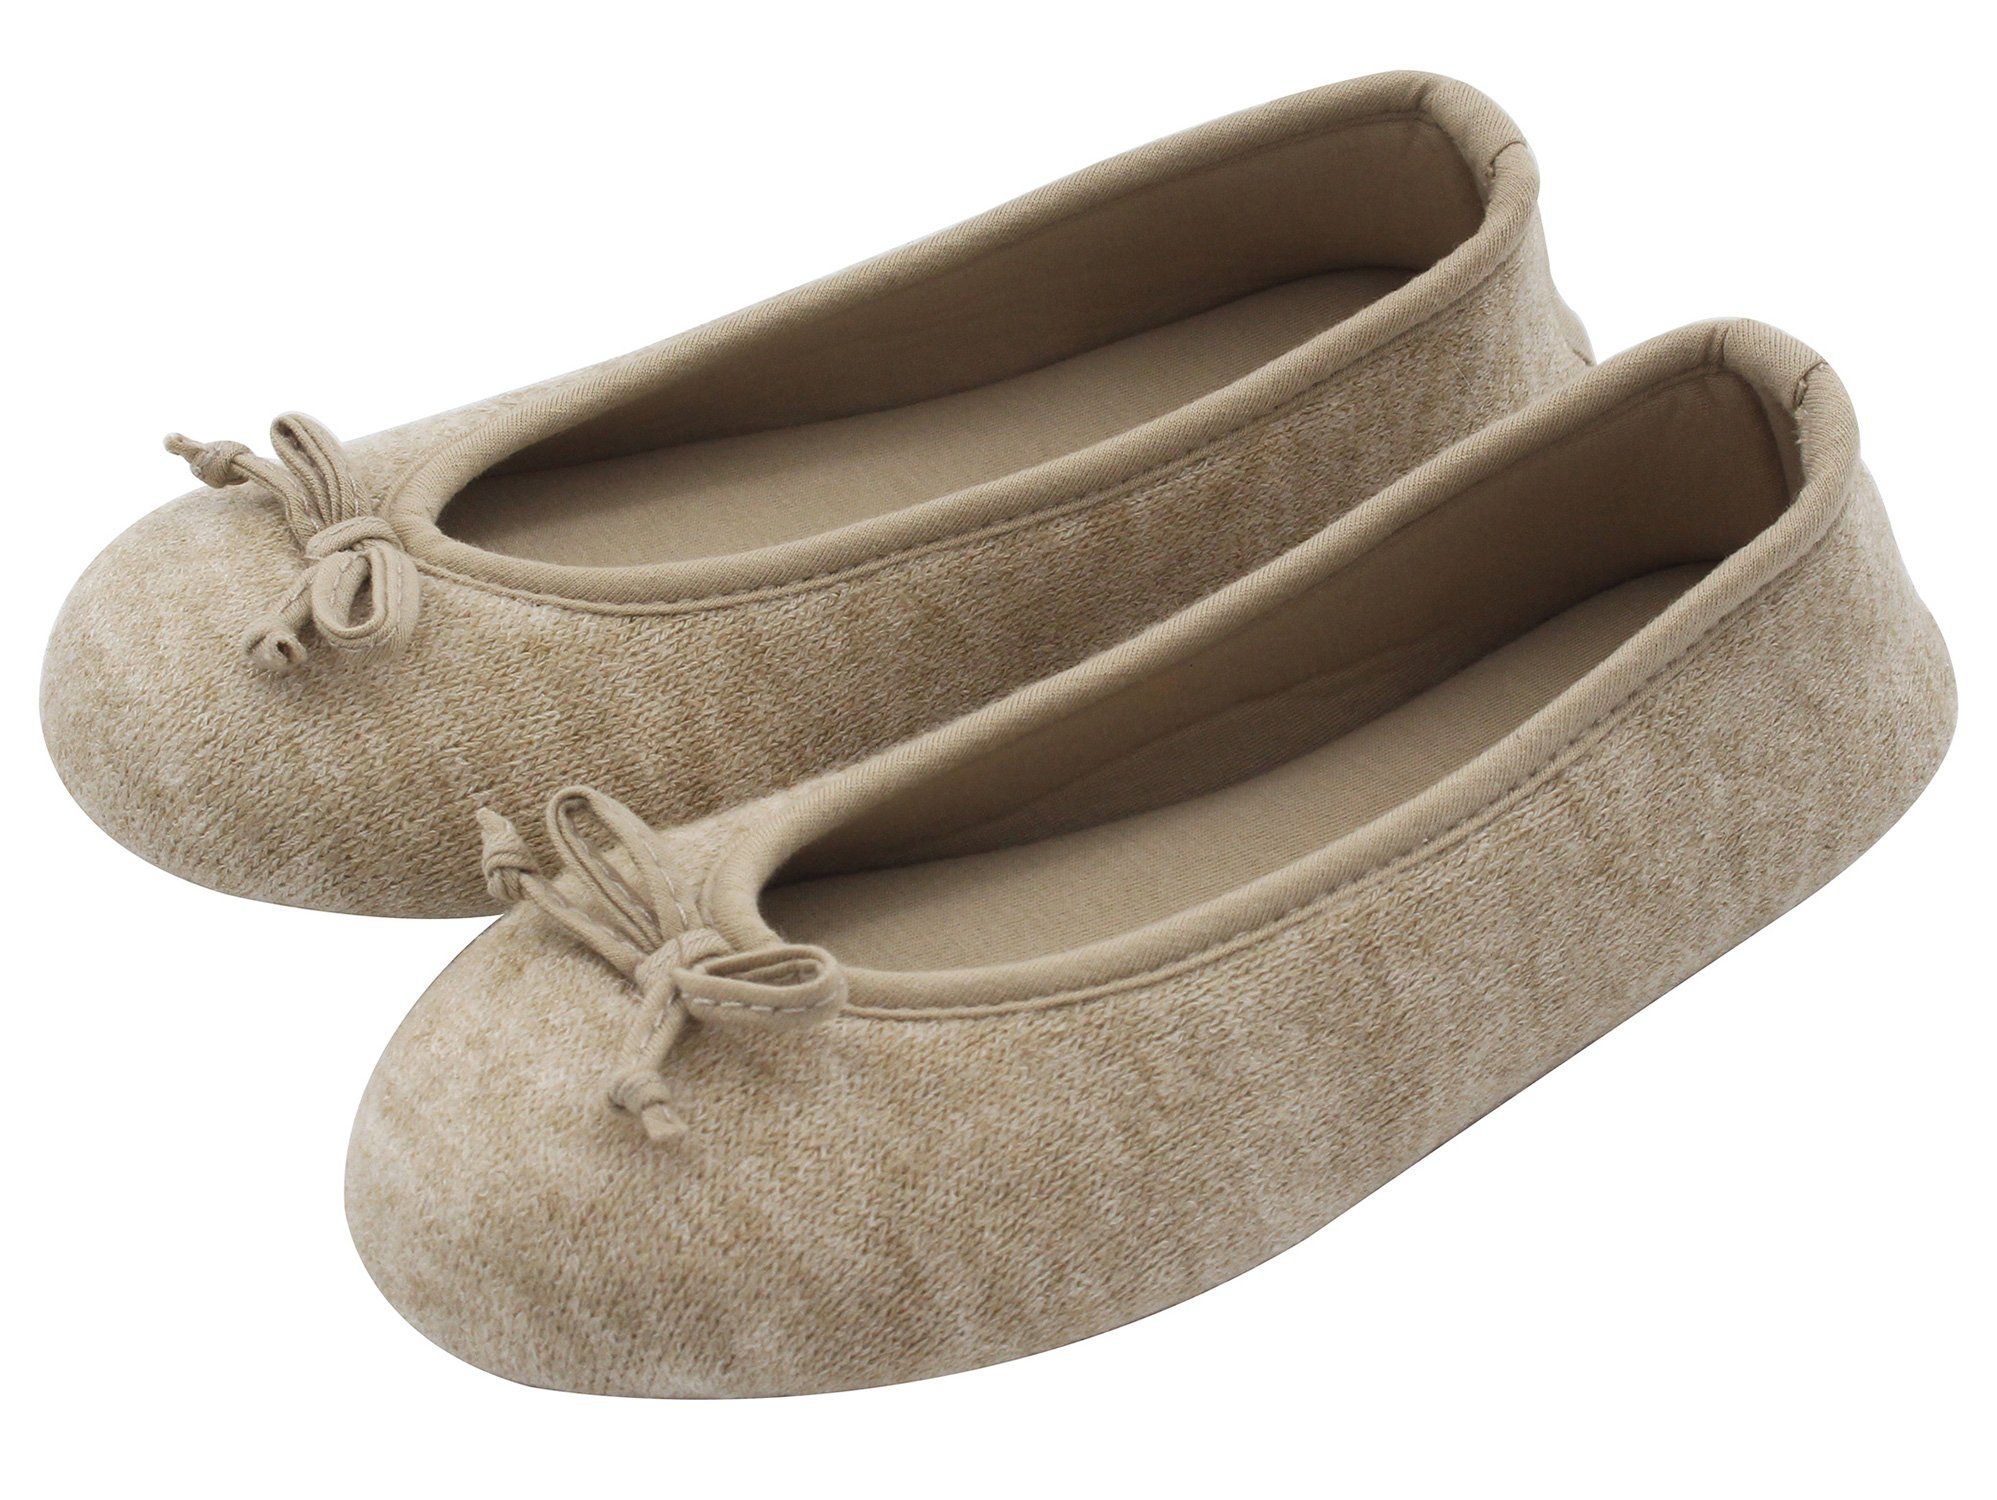 HomeTop Women's Elegant Cashmere Knitted Memory Foam Indoor Ballerina House Slippers/Shoes (Medium/7-8 B(M) US, Beige)